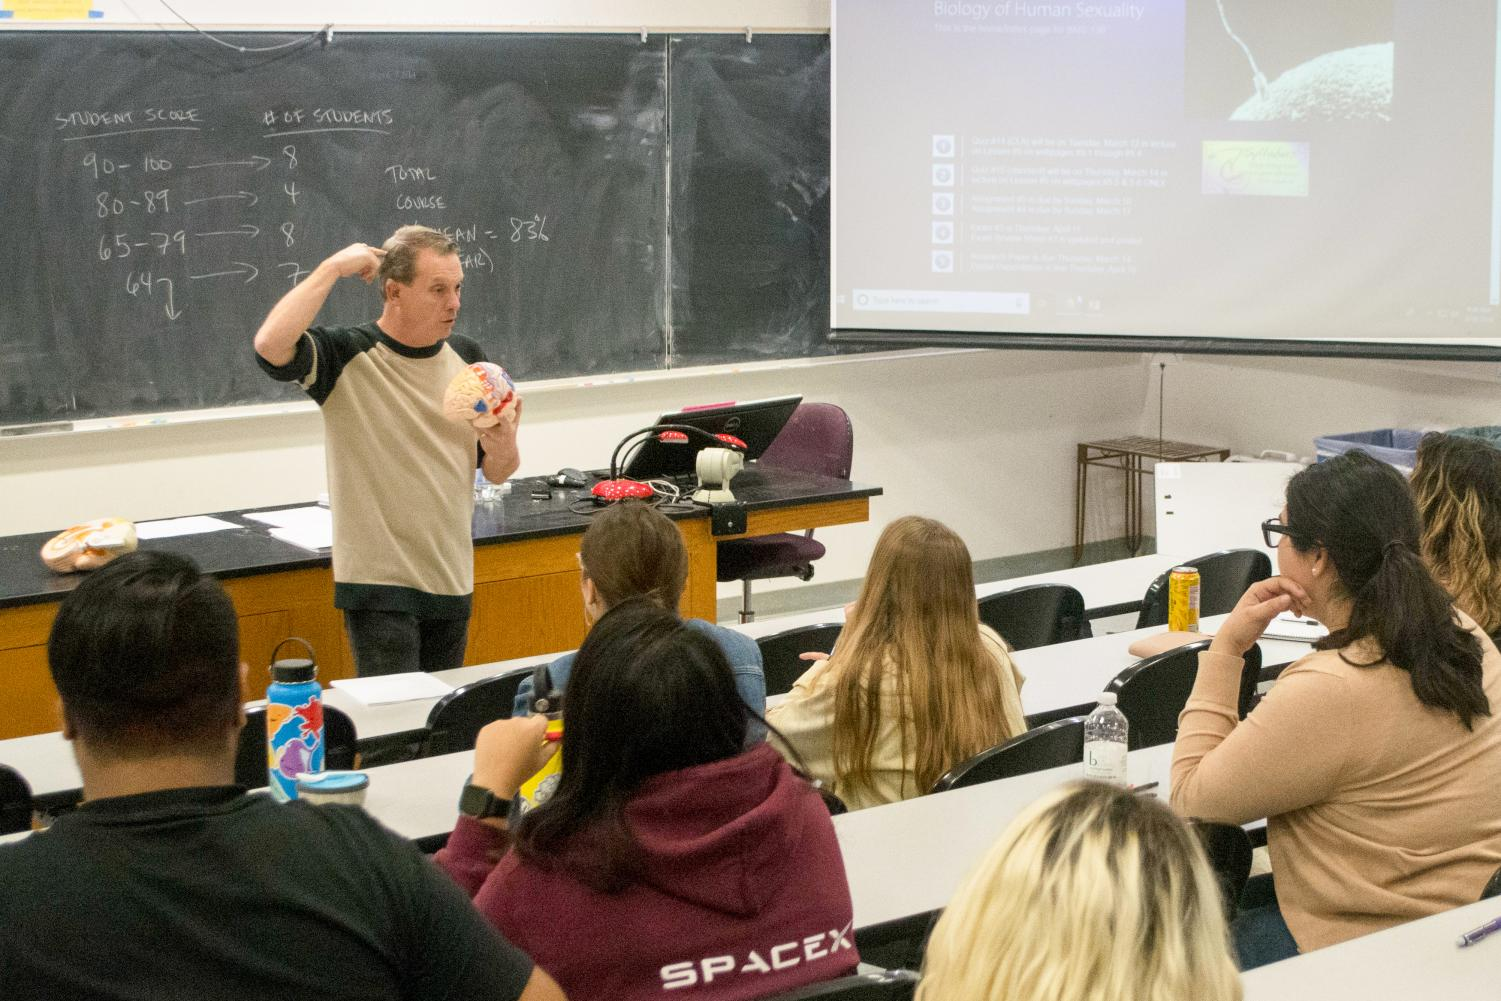 Blake Barron teaches students about the brain in his Biology of Human Sexuality class in the Earth and Biological Sciences Building Room 301 on Thursday, March 14, 2019 at City College in Santa Barbara, Calif.